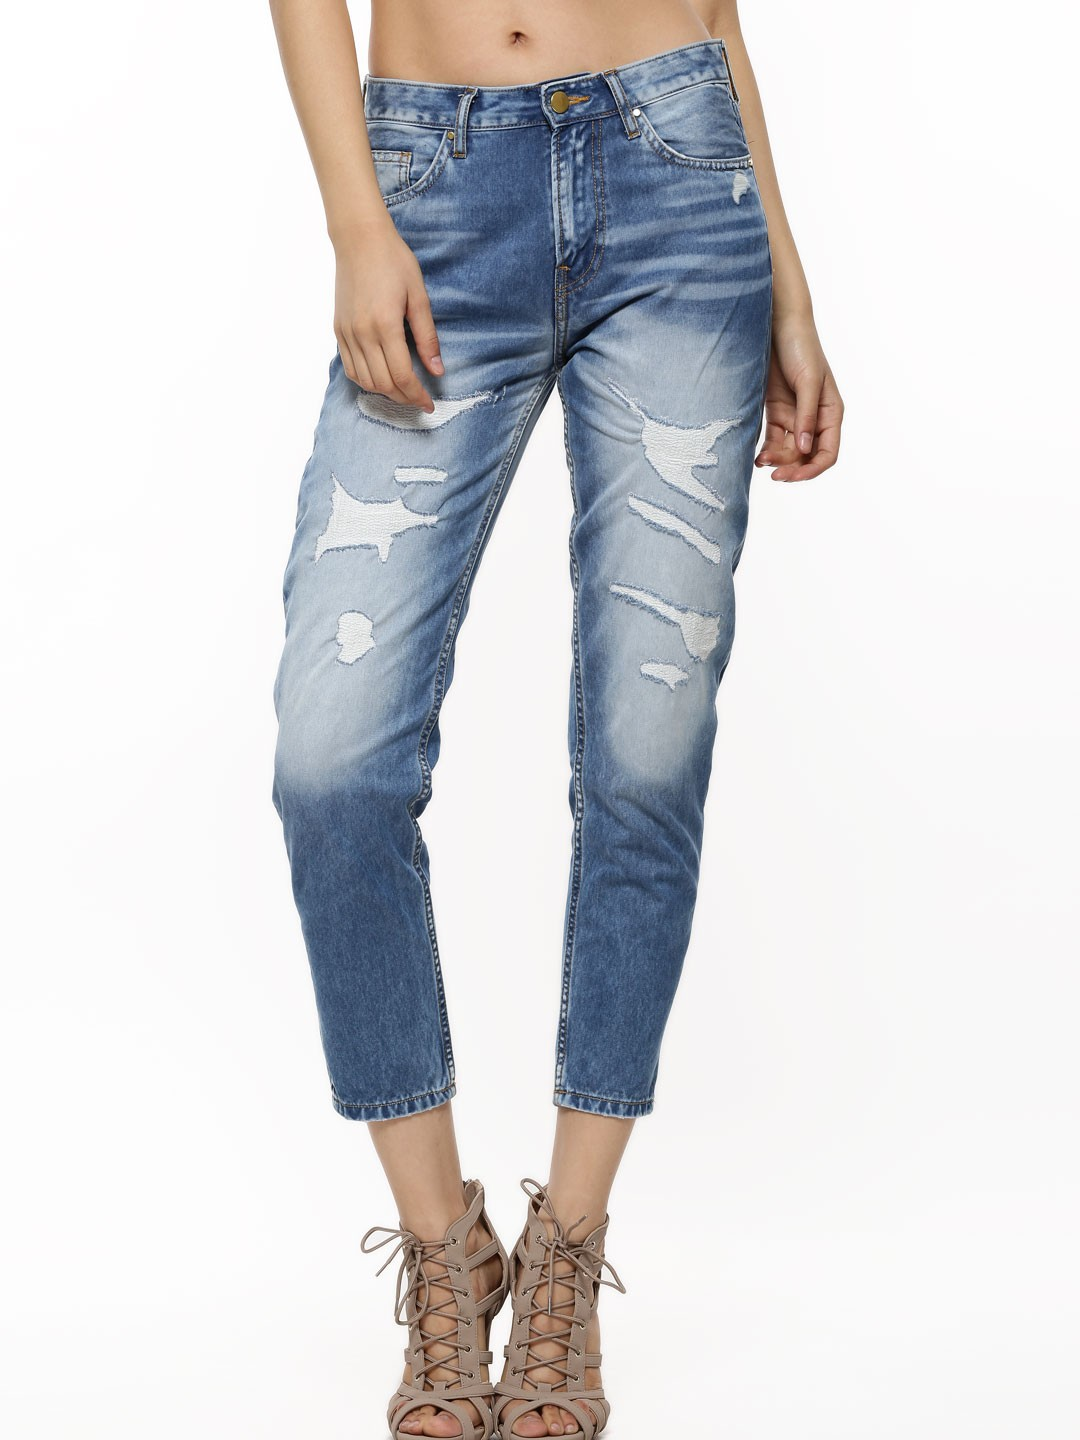 Buy VOI JEANS Ripped Jeans For Women - Women's Blue Ripped Jeans ...